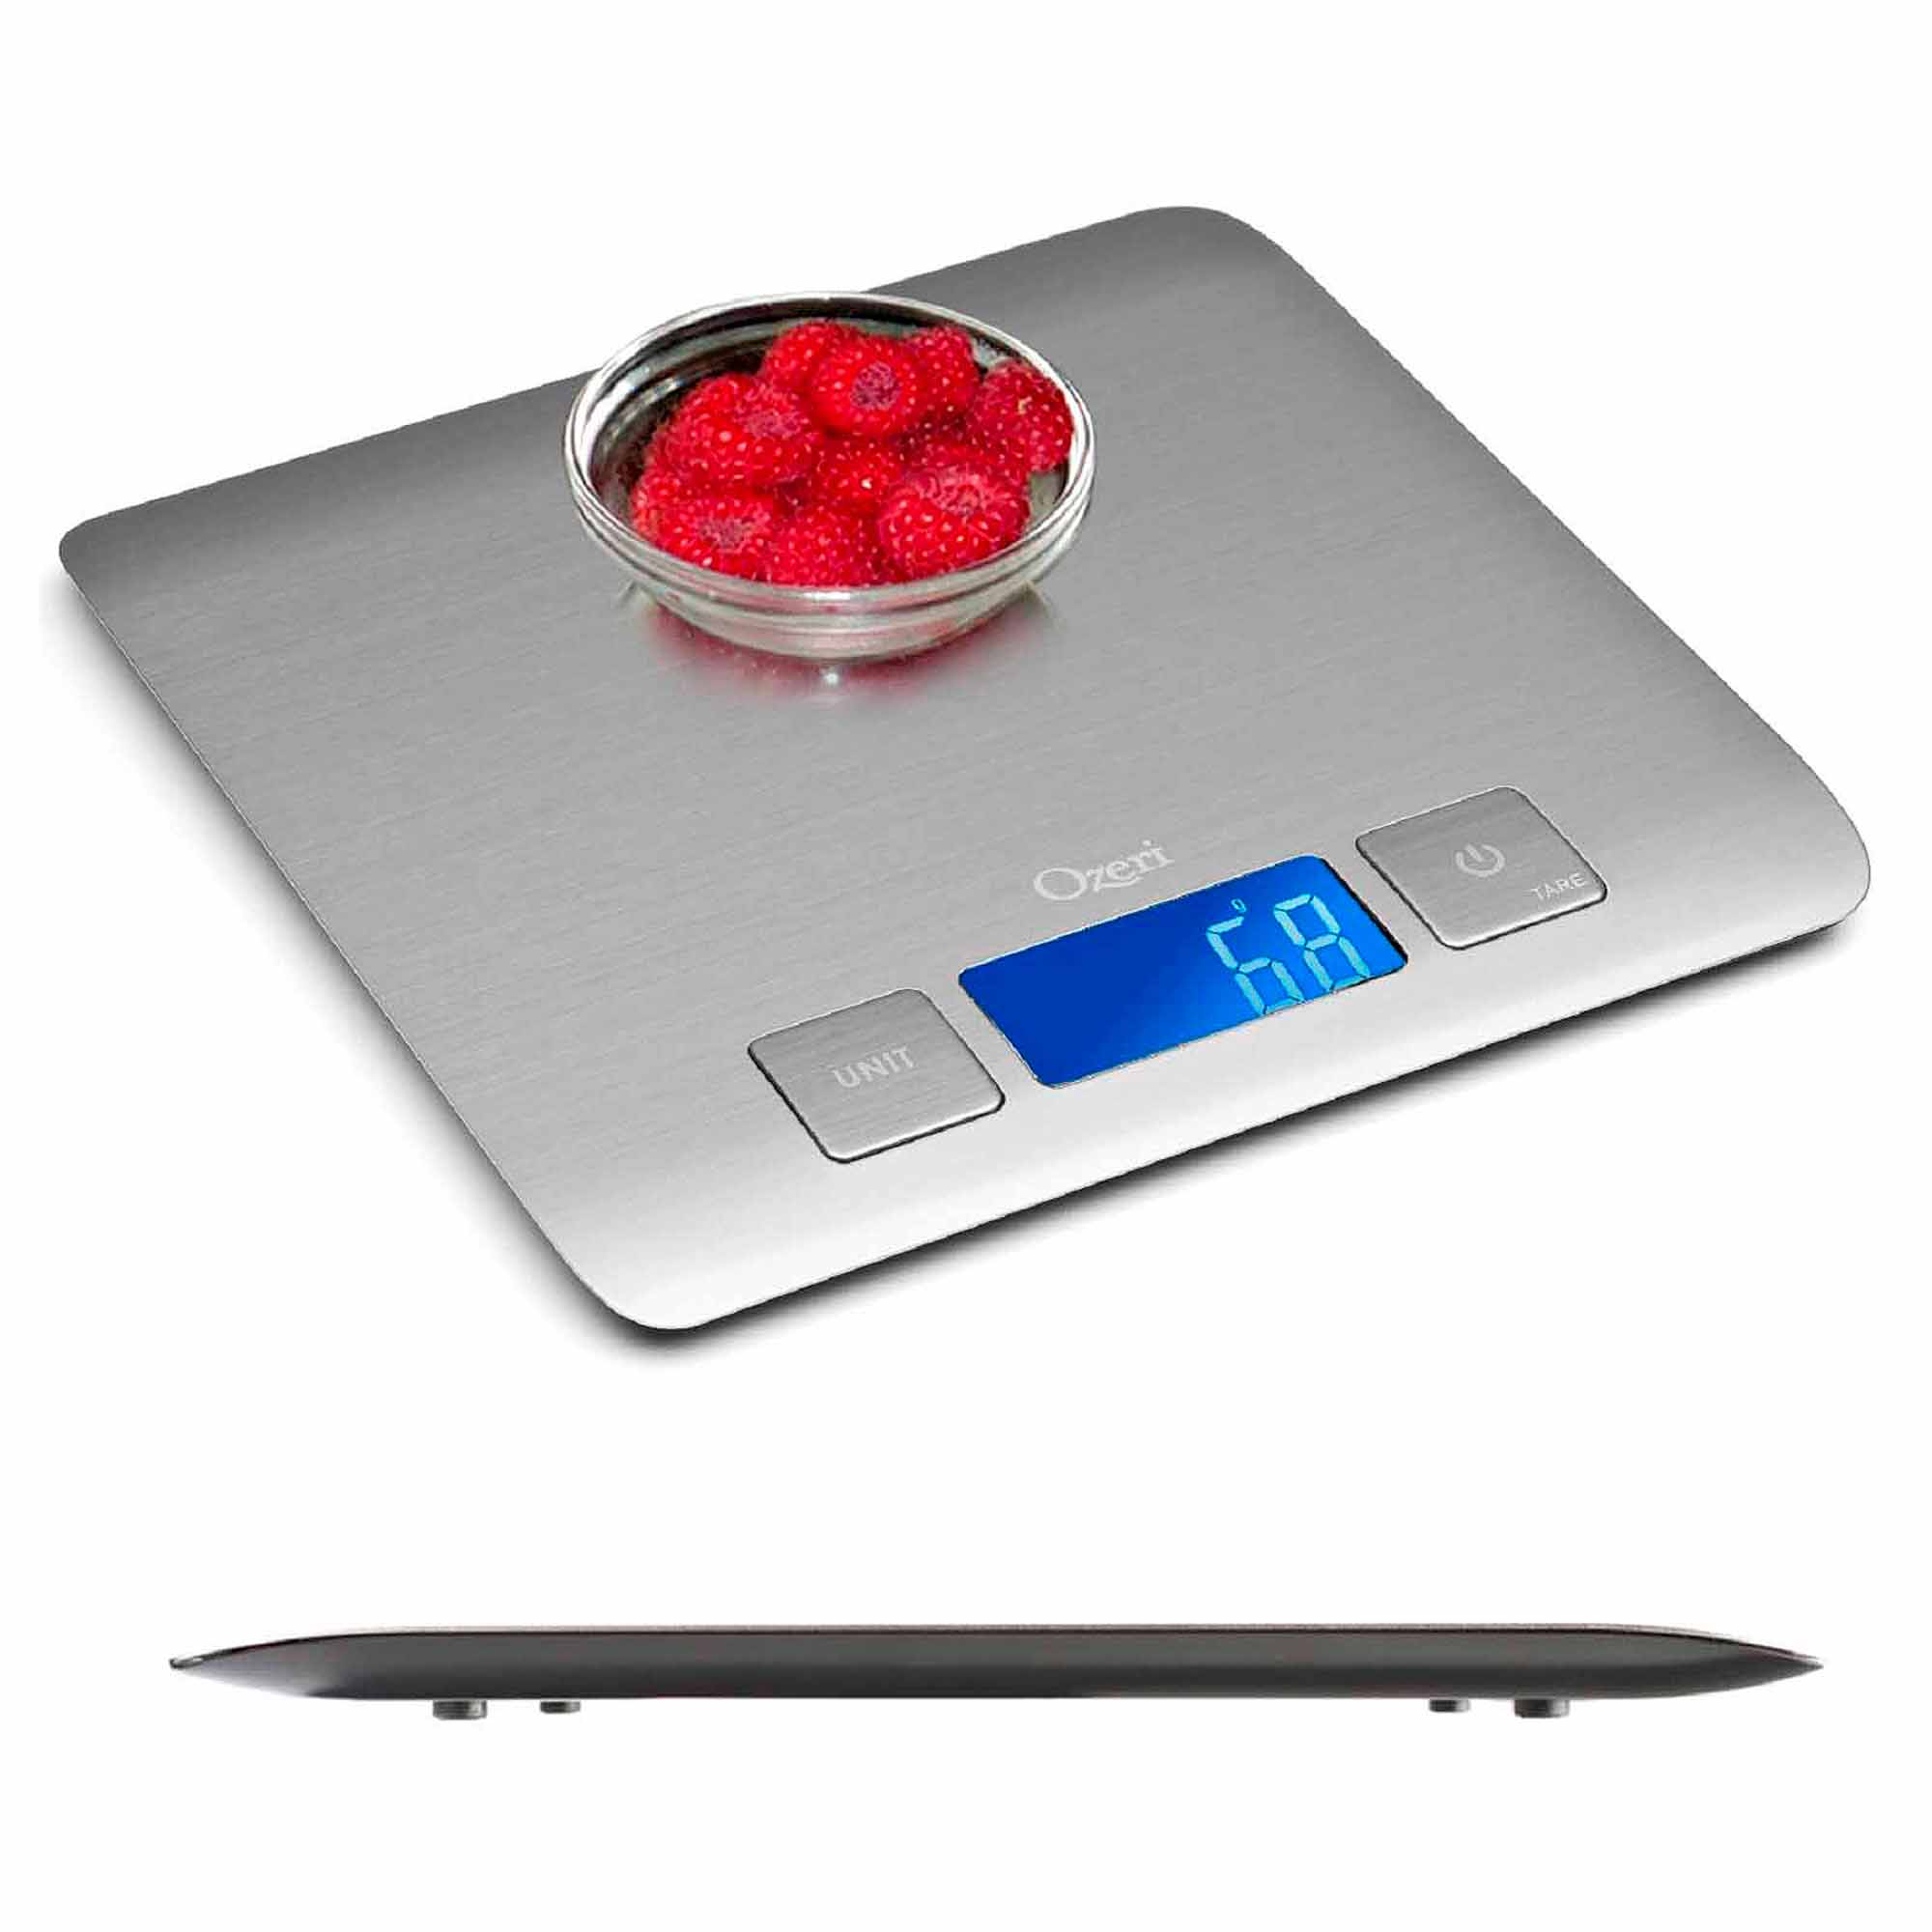 Zenith Digital Kitchen Scale By Ozeri In Refined Stainless Steel With Fingerprint Resistant Coating